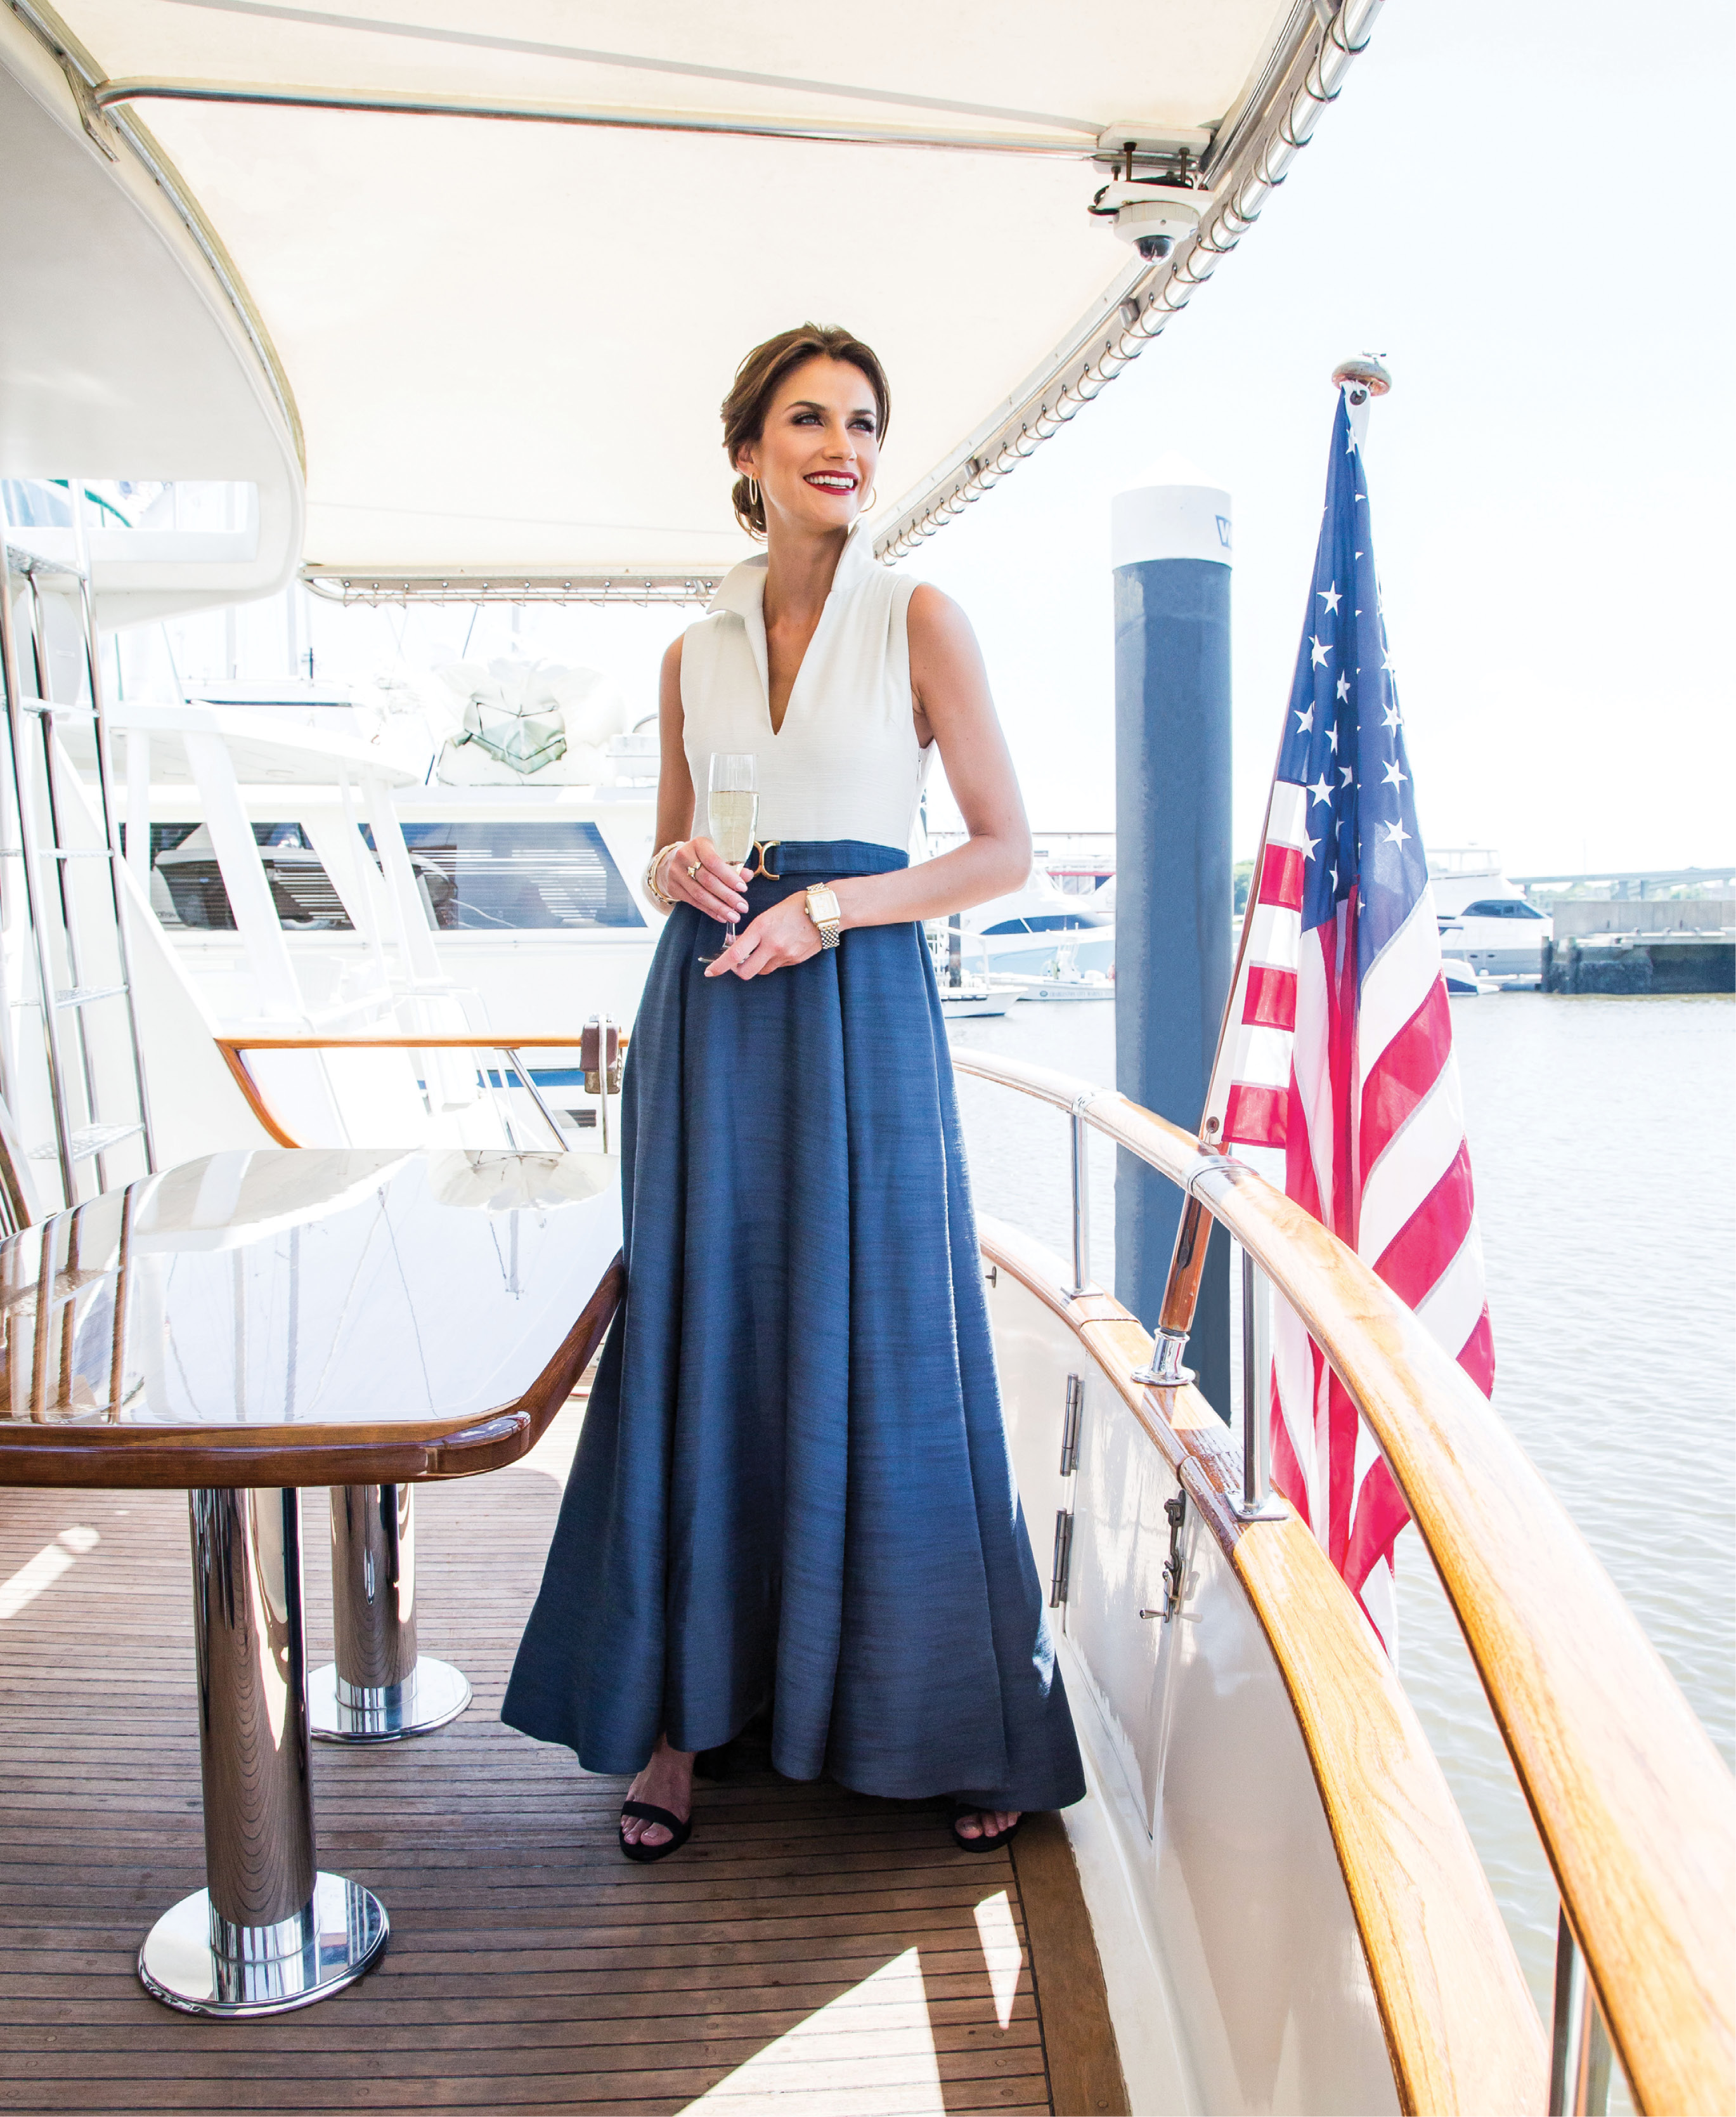 """Mason Hosker """"Charleston"""" gown, $1,270 at Mason Hosker; Stuart Weitzman """"NearlyNude"""" suede sandal in """"blue,"""" $398 at Shoes on King; 14K yellow-gold and diamond hoops, $5,000, and Michele """"Deco Madison"""" two-tone, diamond-dial watch, $1,495, both at Polly's Fine Jewelry; David Yurman 18K gold and diamond """"Chatelaine Bypass Ring,"""" $850 at REEDS Jewelers; Stern Collection 14K white-, yellow-, and rose-gold link bracelet with diamonds, $5,600 at Diamonds Direct; 18K yellow-gold and diamond station bangle $4,260 at Croghan's Jewel Box"""